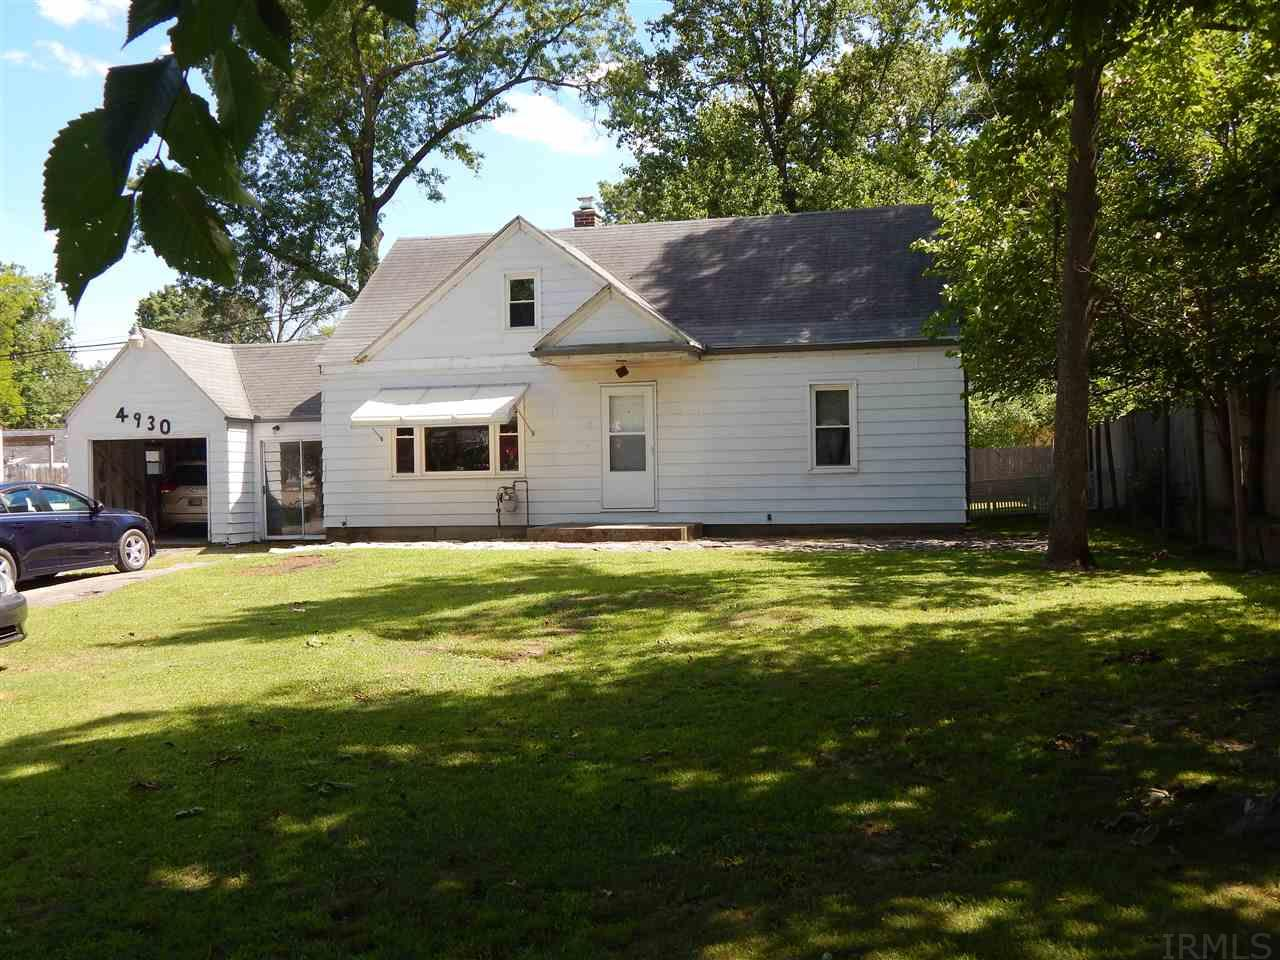 4930 E State, Fort Wayne, IN 46815